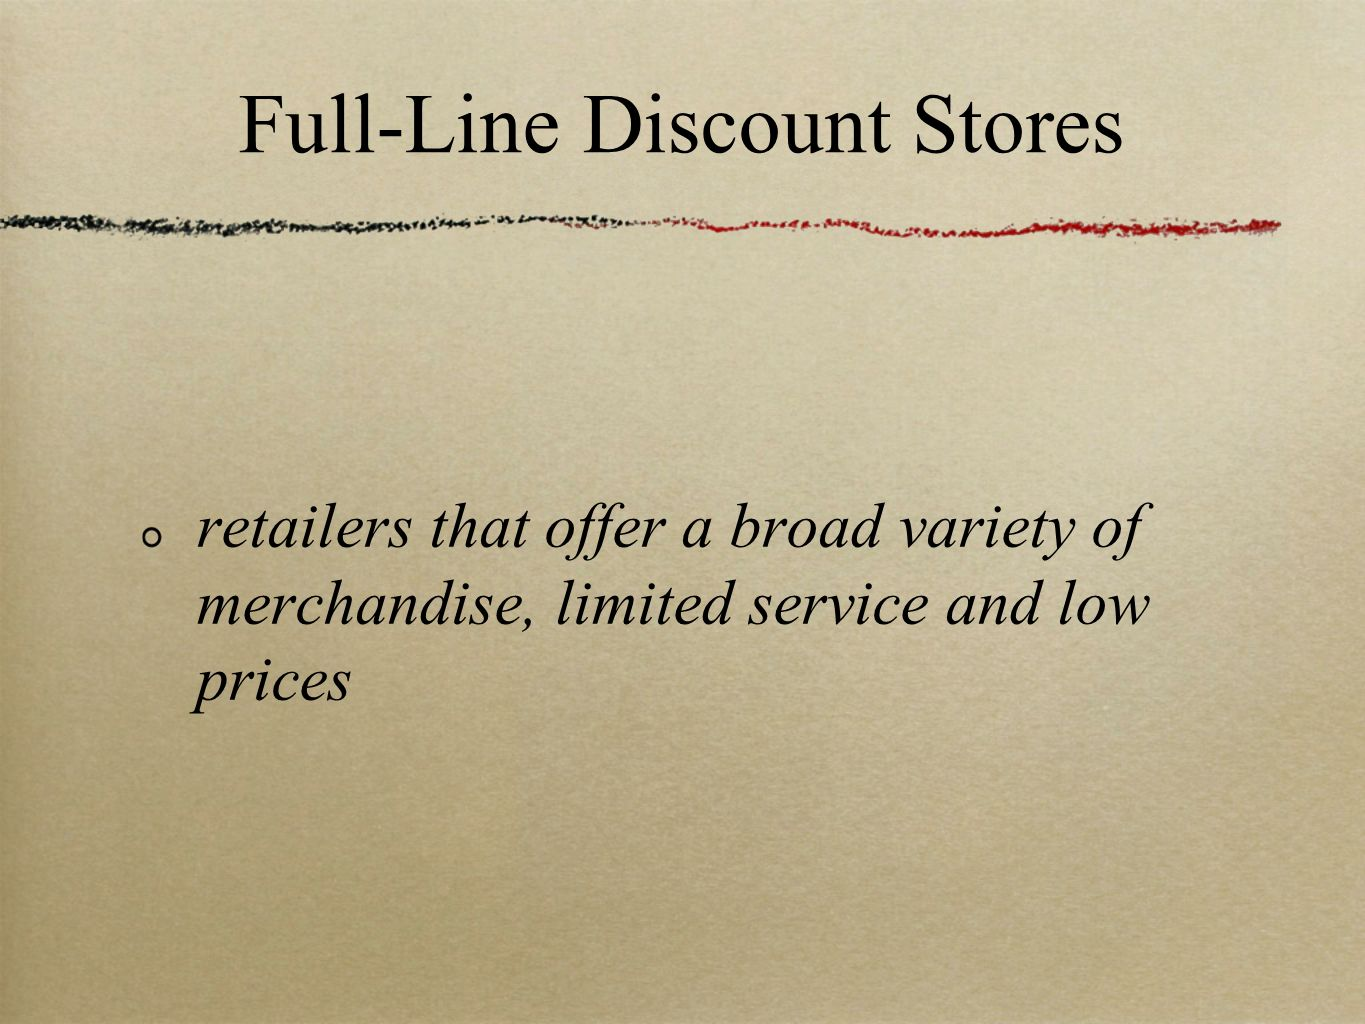 Full-Line Discount Stores